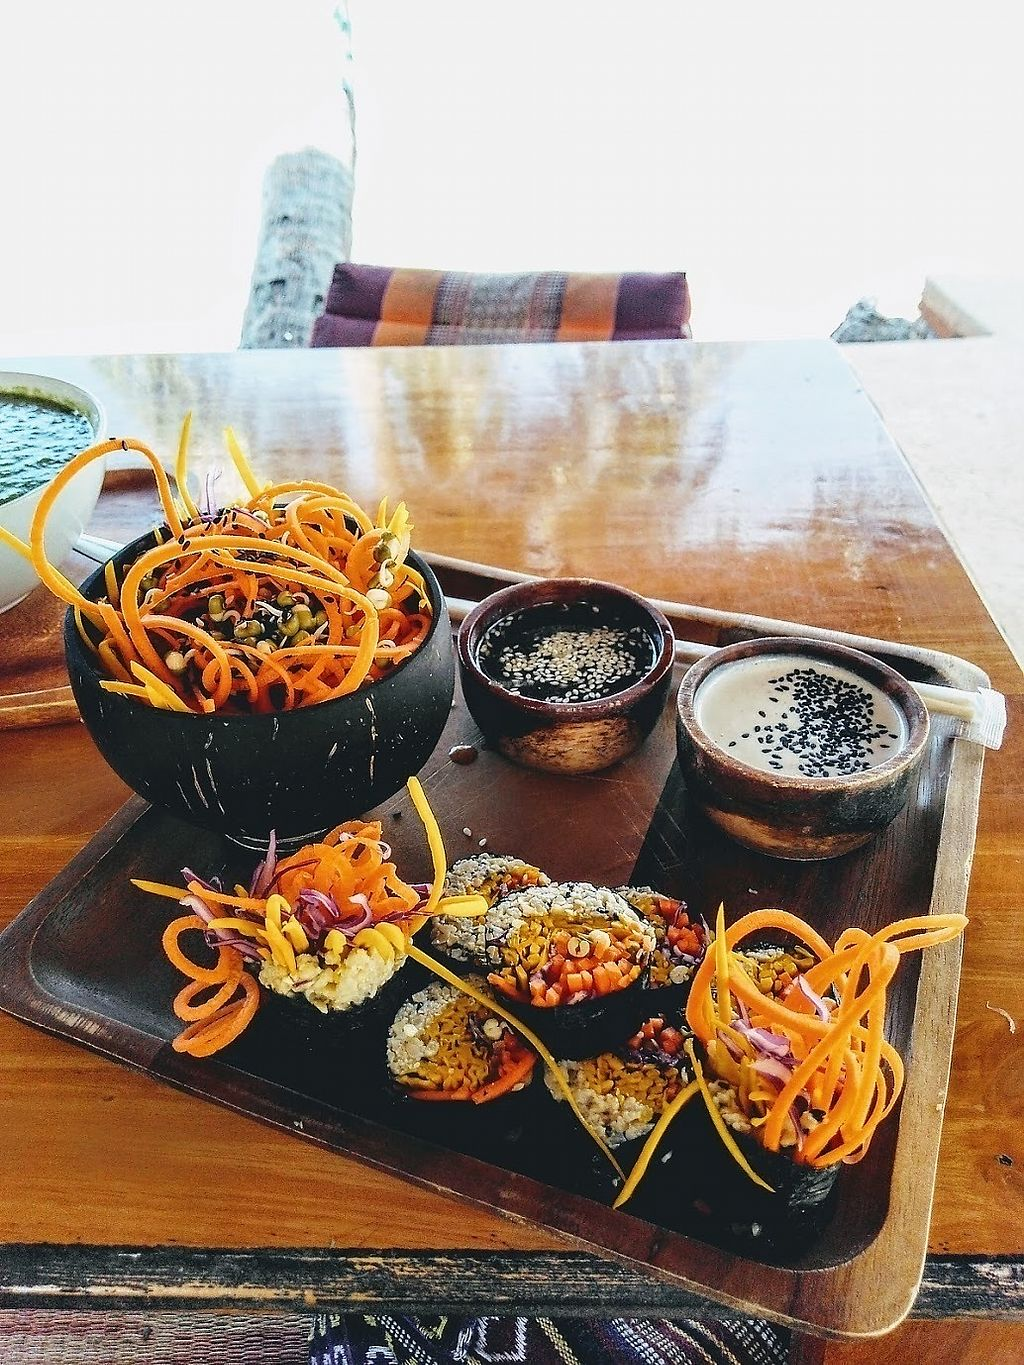 """Photo of Orion Cafe  by <a href=""""/members/profile/GinJan"""">GinJan</a> <br/>Raw Vegan Sushi - amazing!! <br/> January 6, 2018  - <a href='/contact/abuse/image/36552/343564'>Report</a>"""